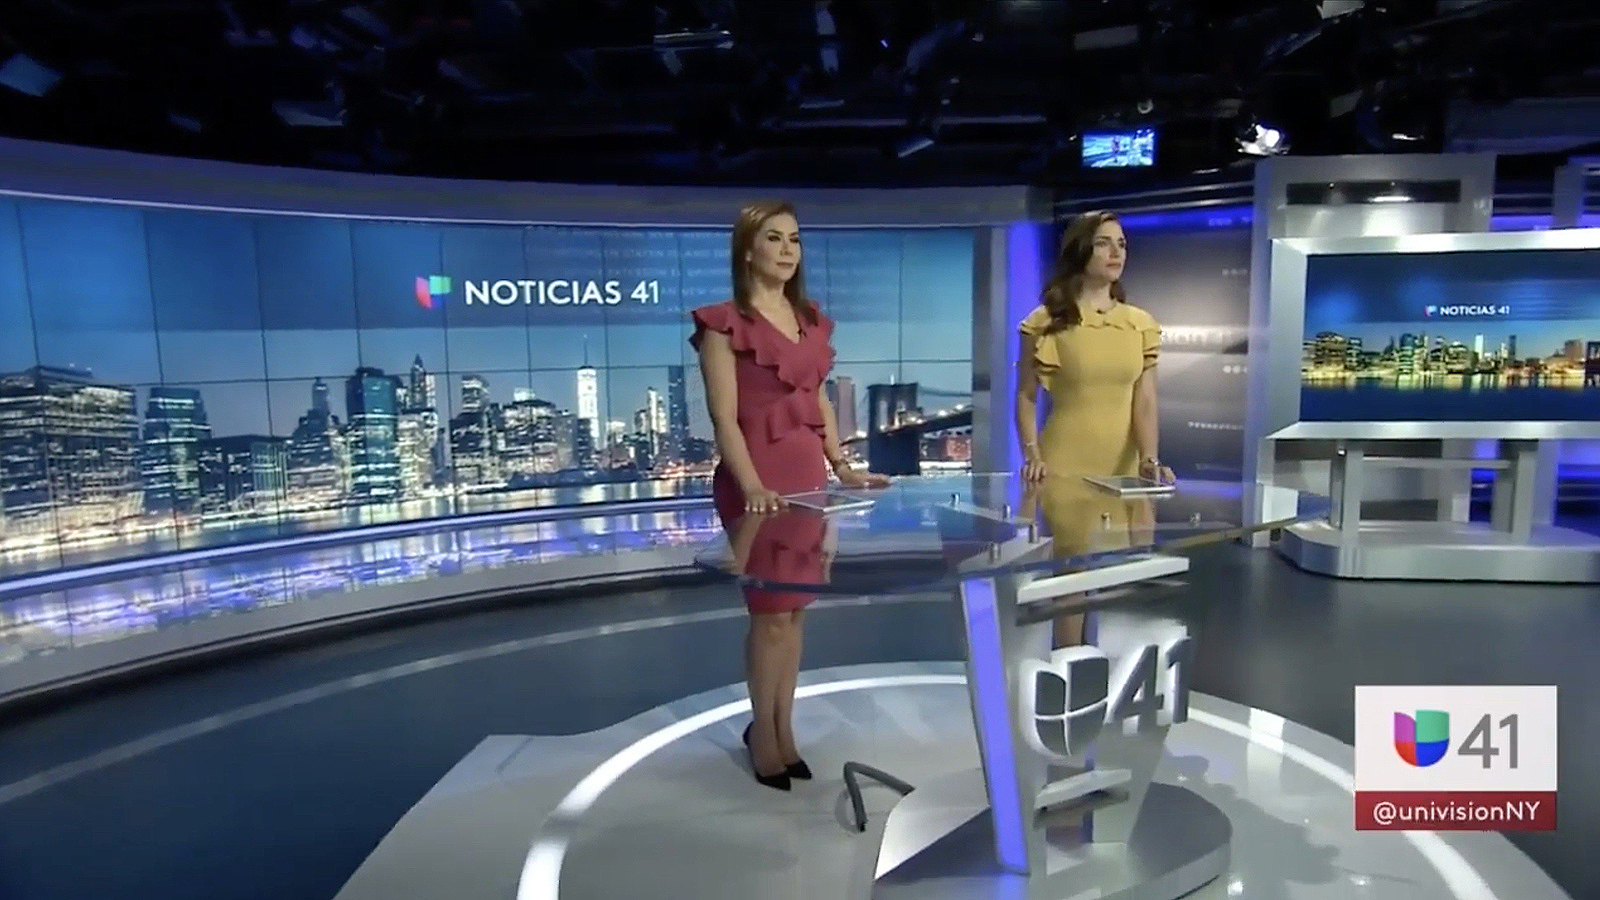 NCS_Univision-41-New-York-City-Studio-Pulso-Design_007